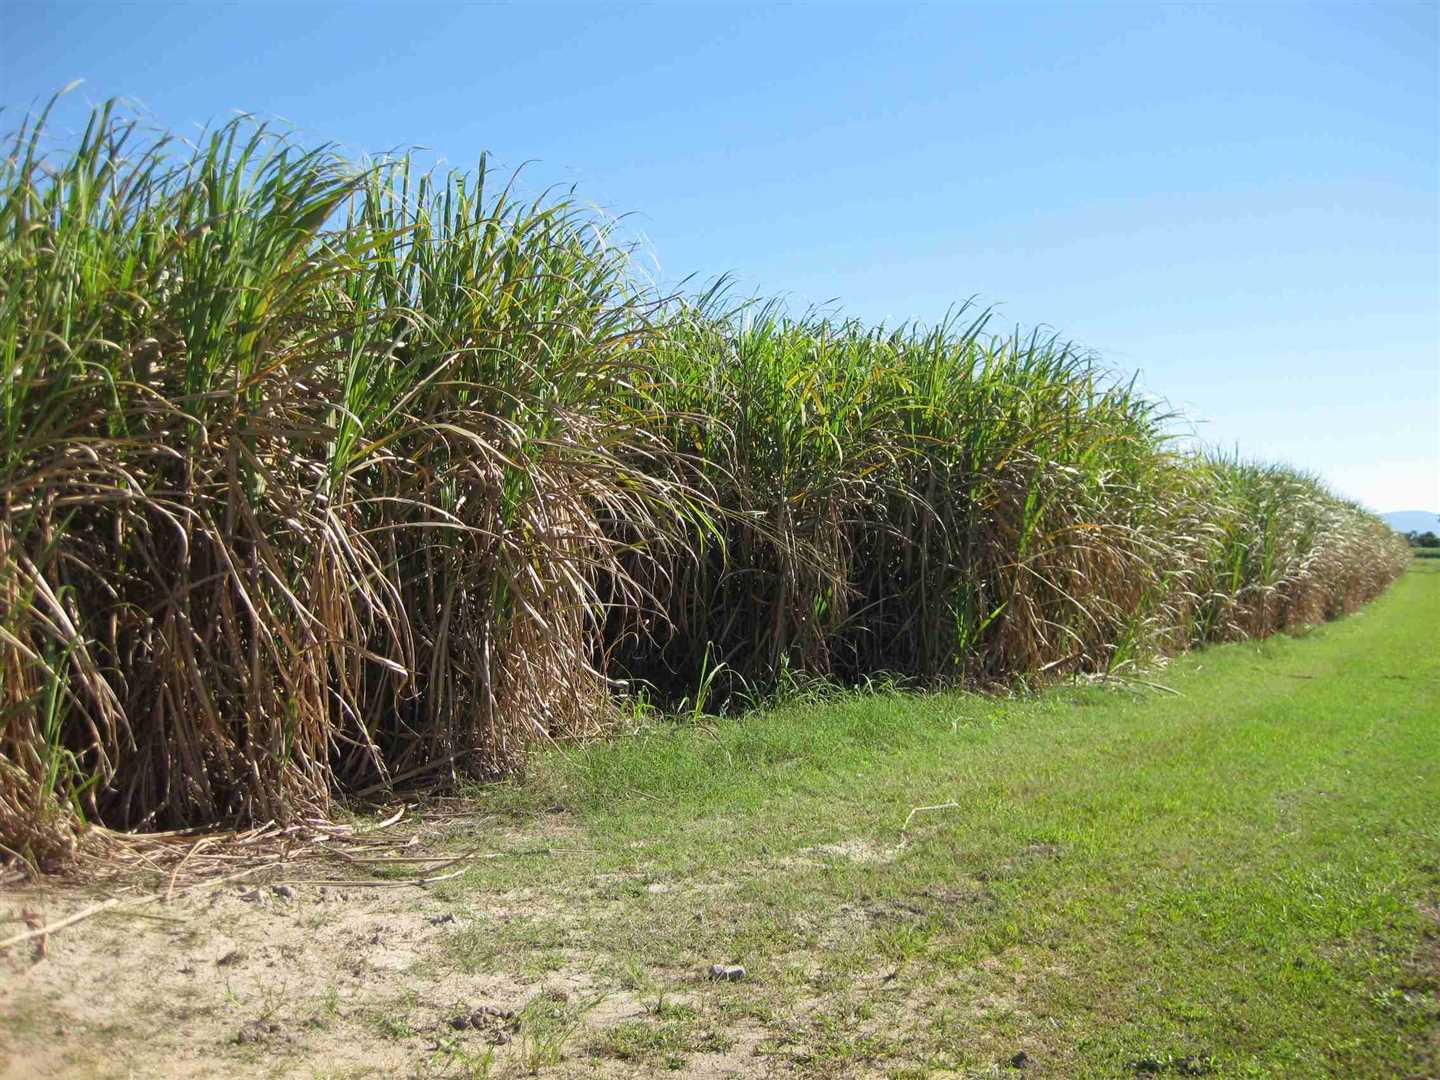 View of part of property showing part of cane crop, photo 3